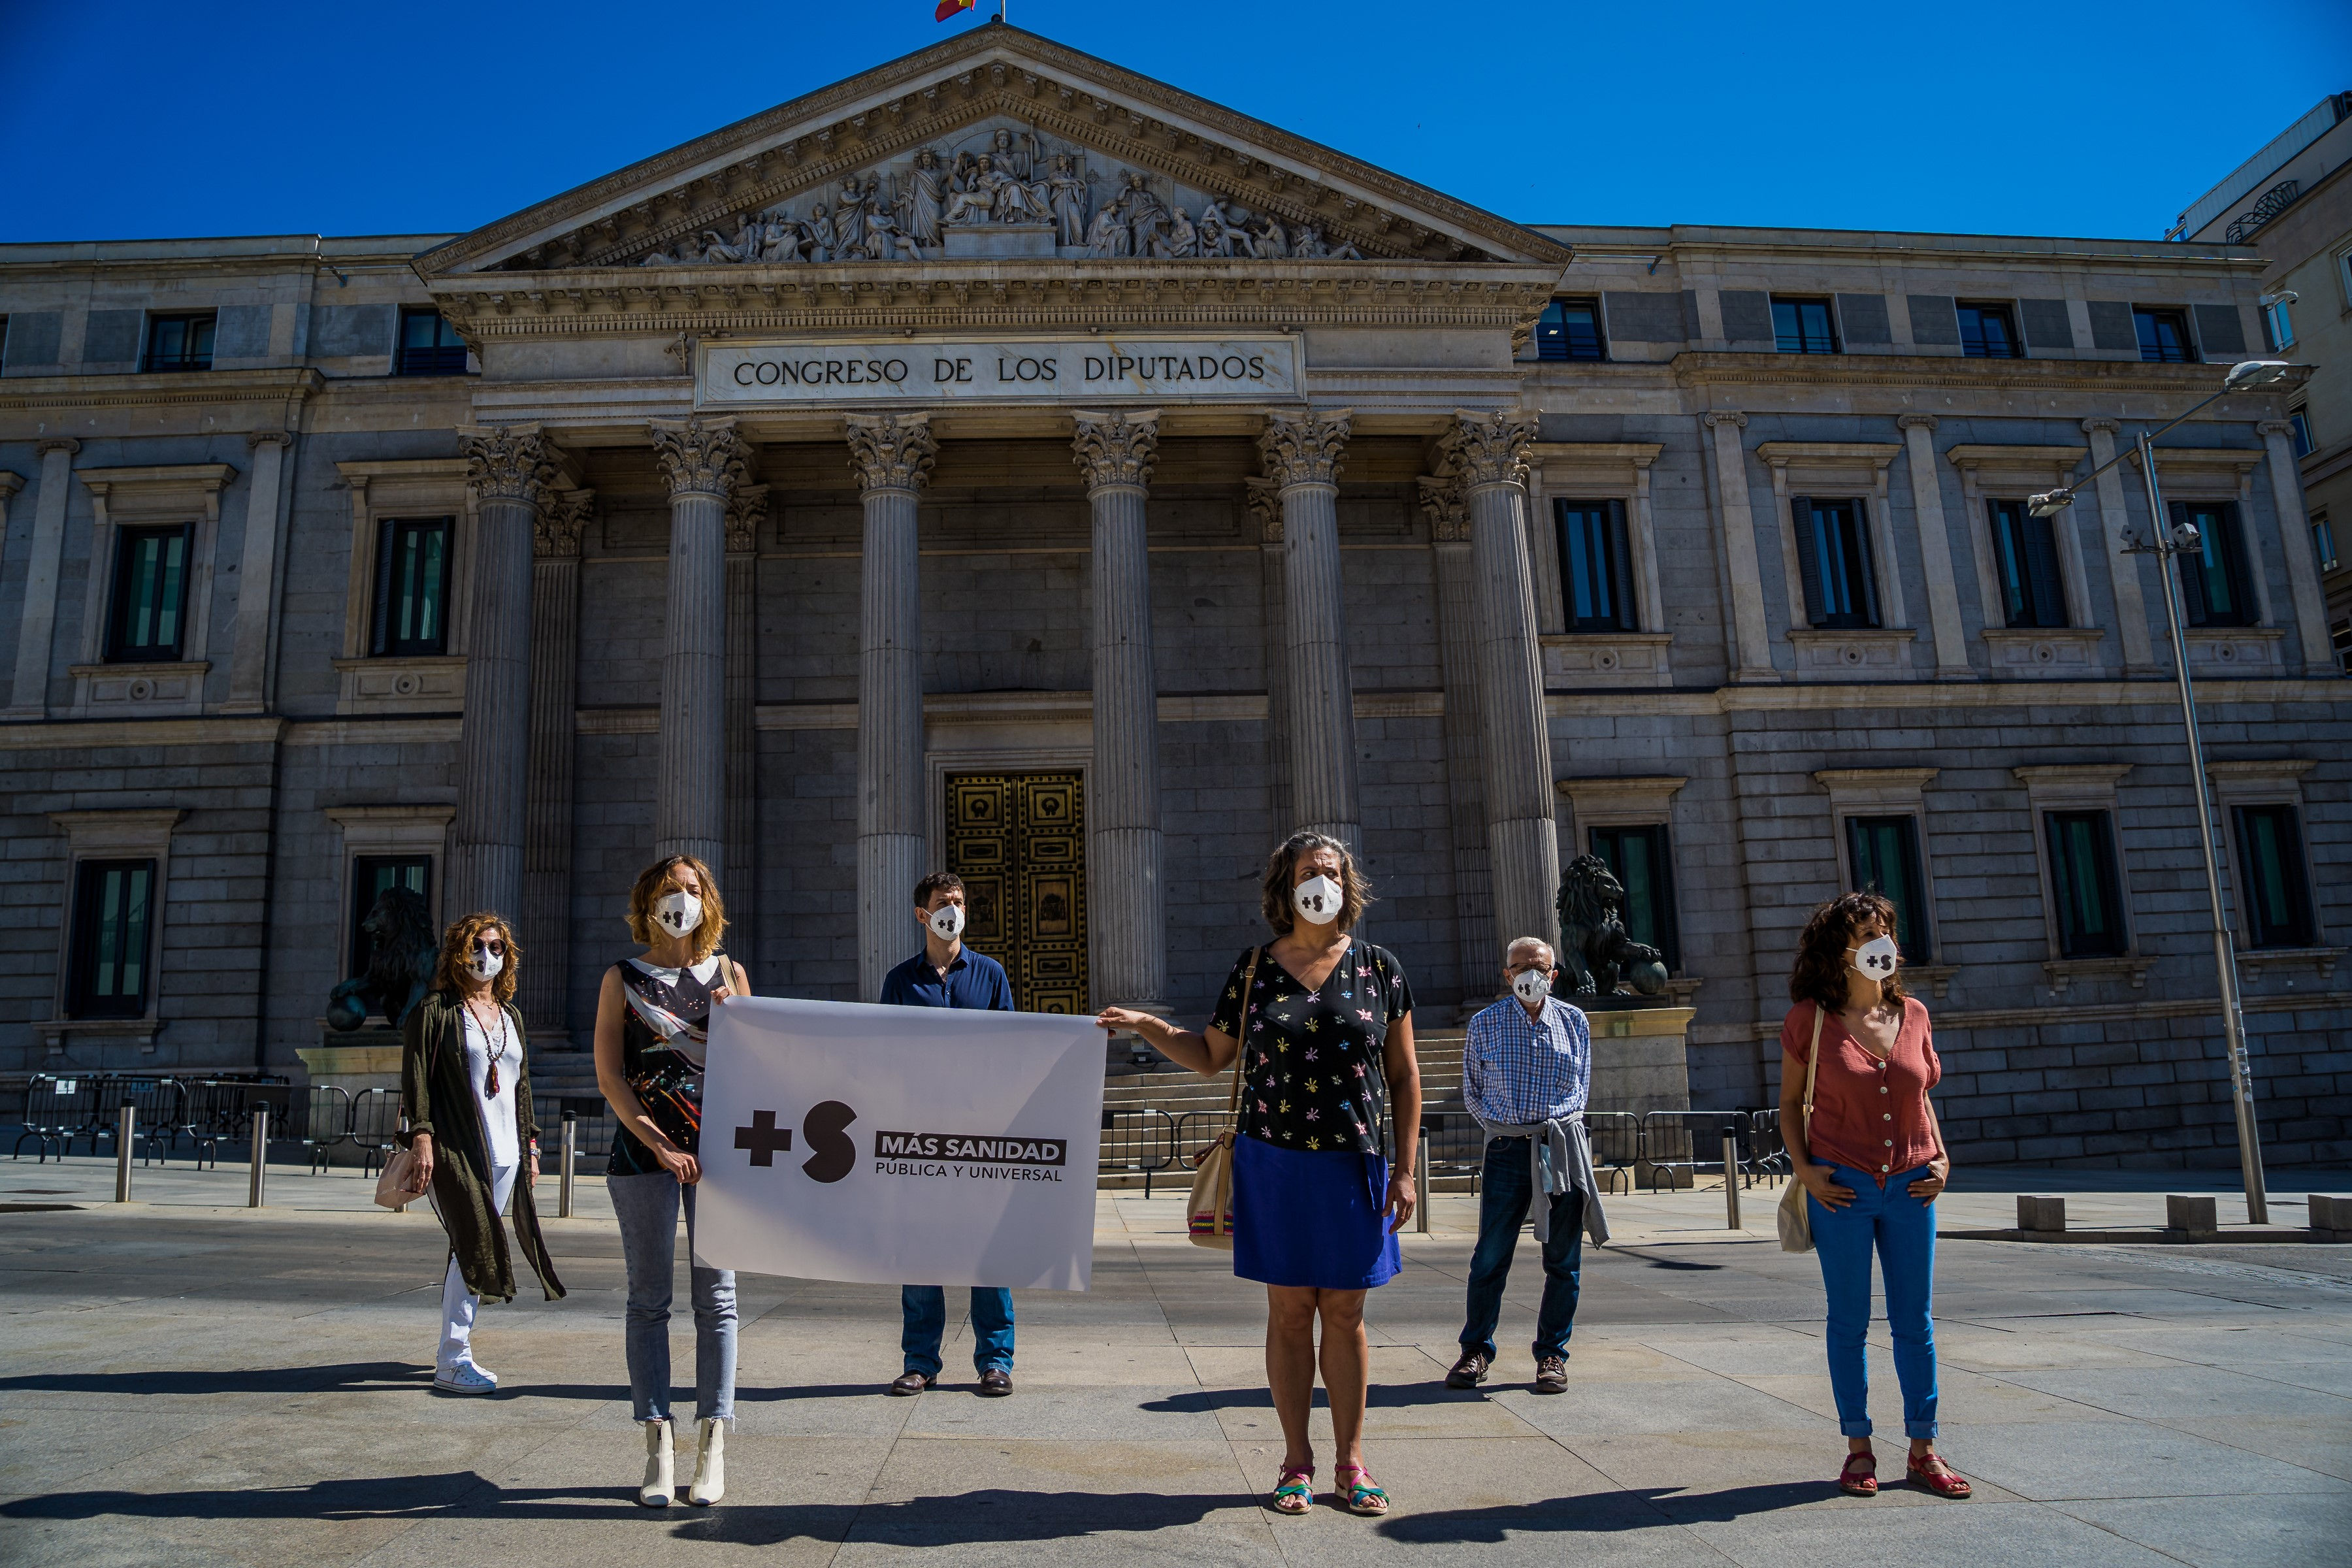 After all the applause, it's time to strengthen the  Spanish National Healthcare System